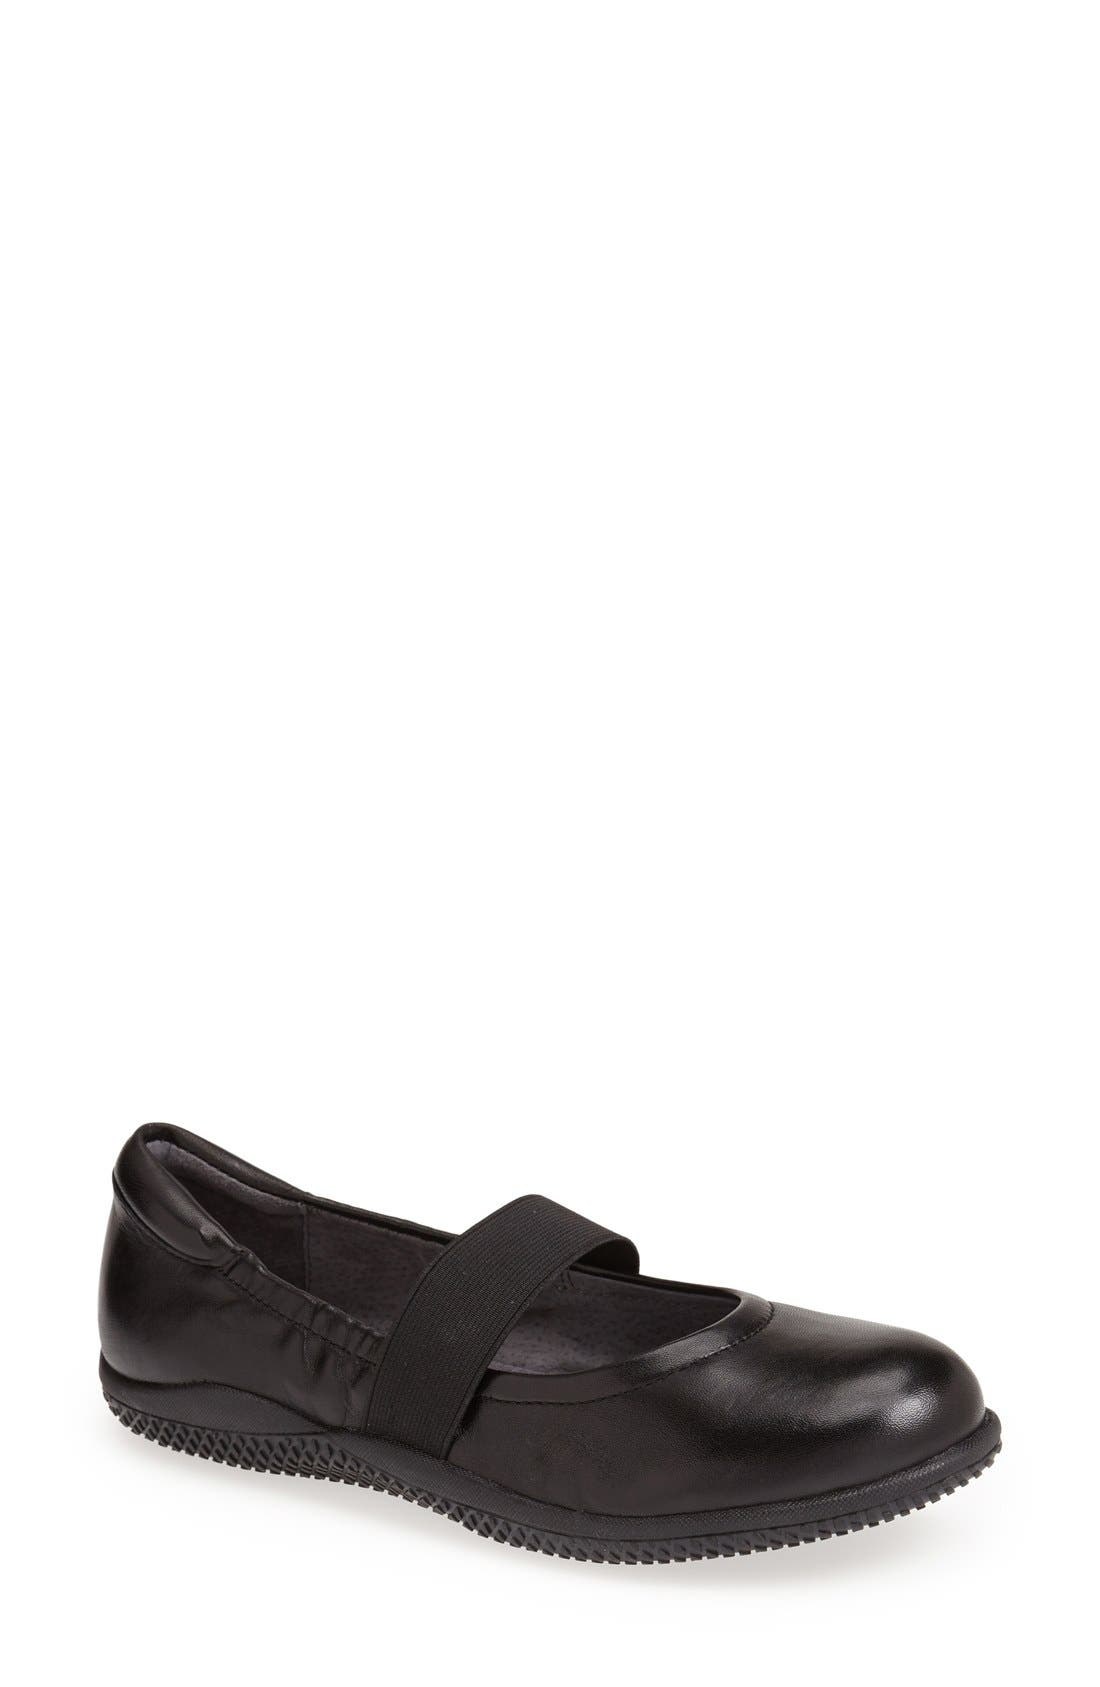 'High Point' Mary Jane Flat,                         Main,                         color, 001